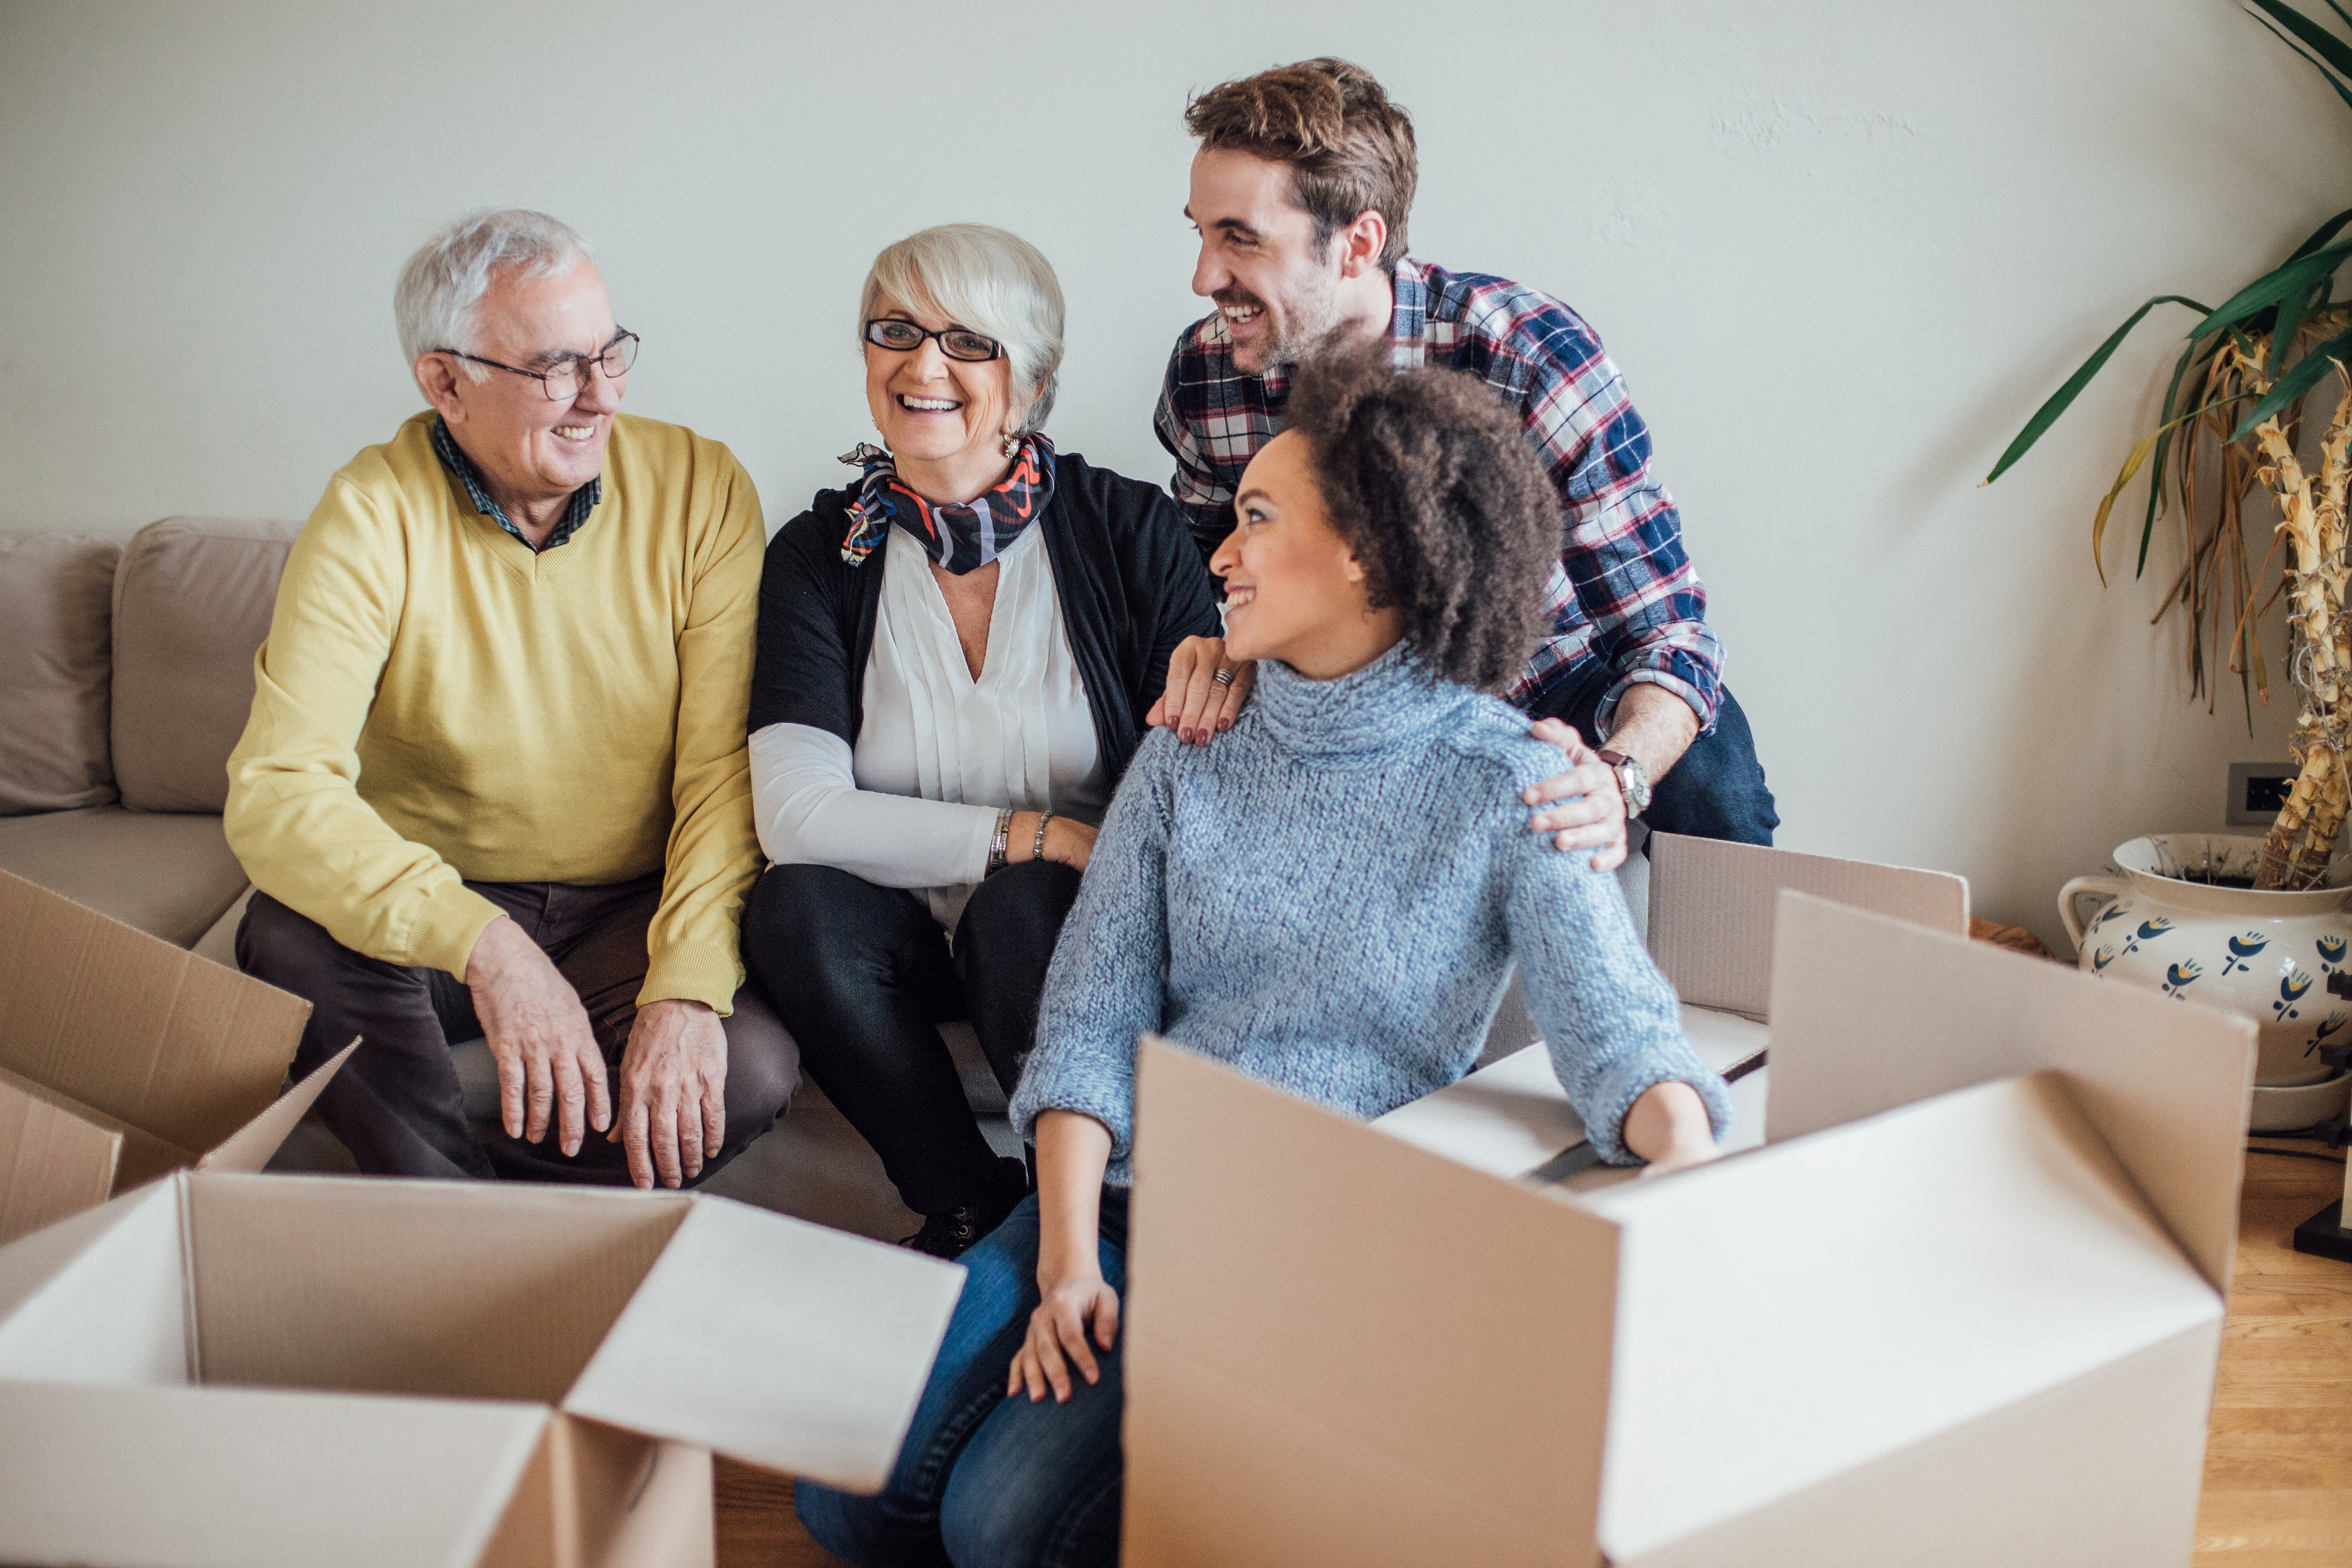 Family packing boxes together while laughing with one another